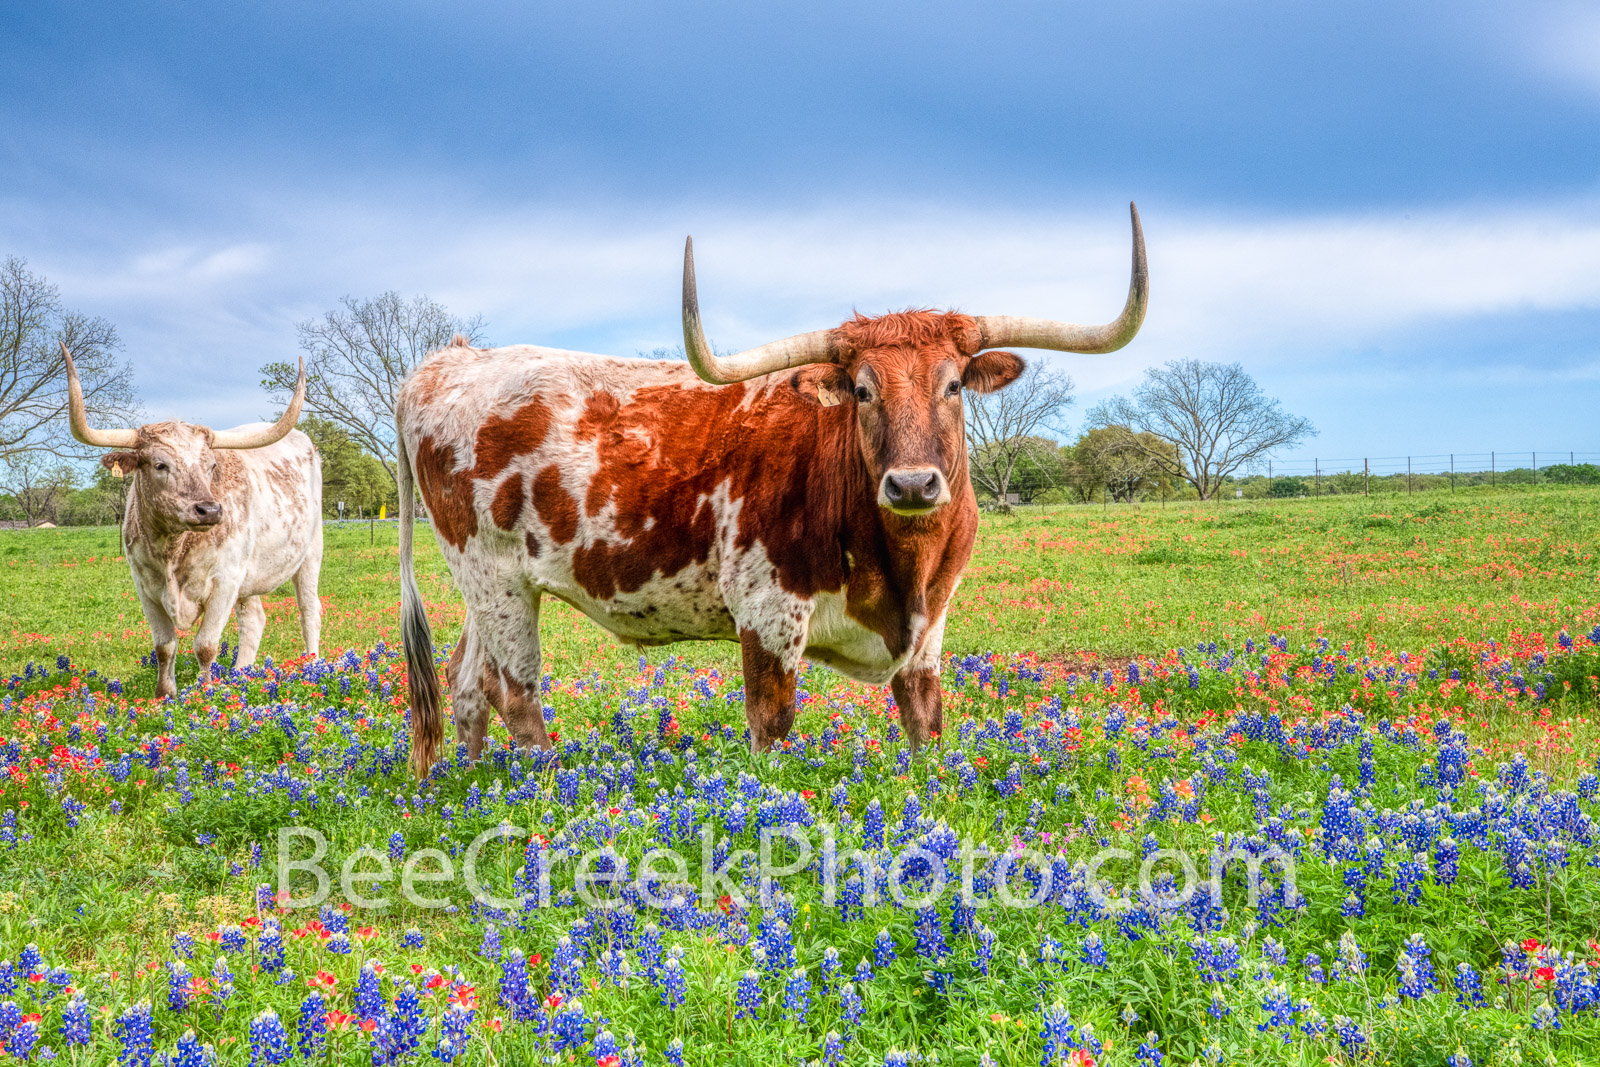 bluebonnets, texas bluebonnets, texas wildflowers,  indian paintbrush, texas hill country, wildflowers, texas, longhorns, texas hill country, texas longhorns, cattle, herd, steers, horns, hill country, photo